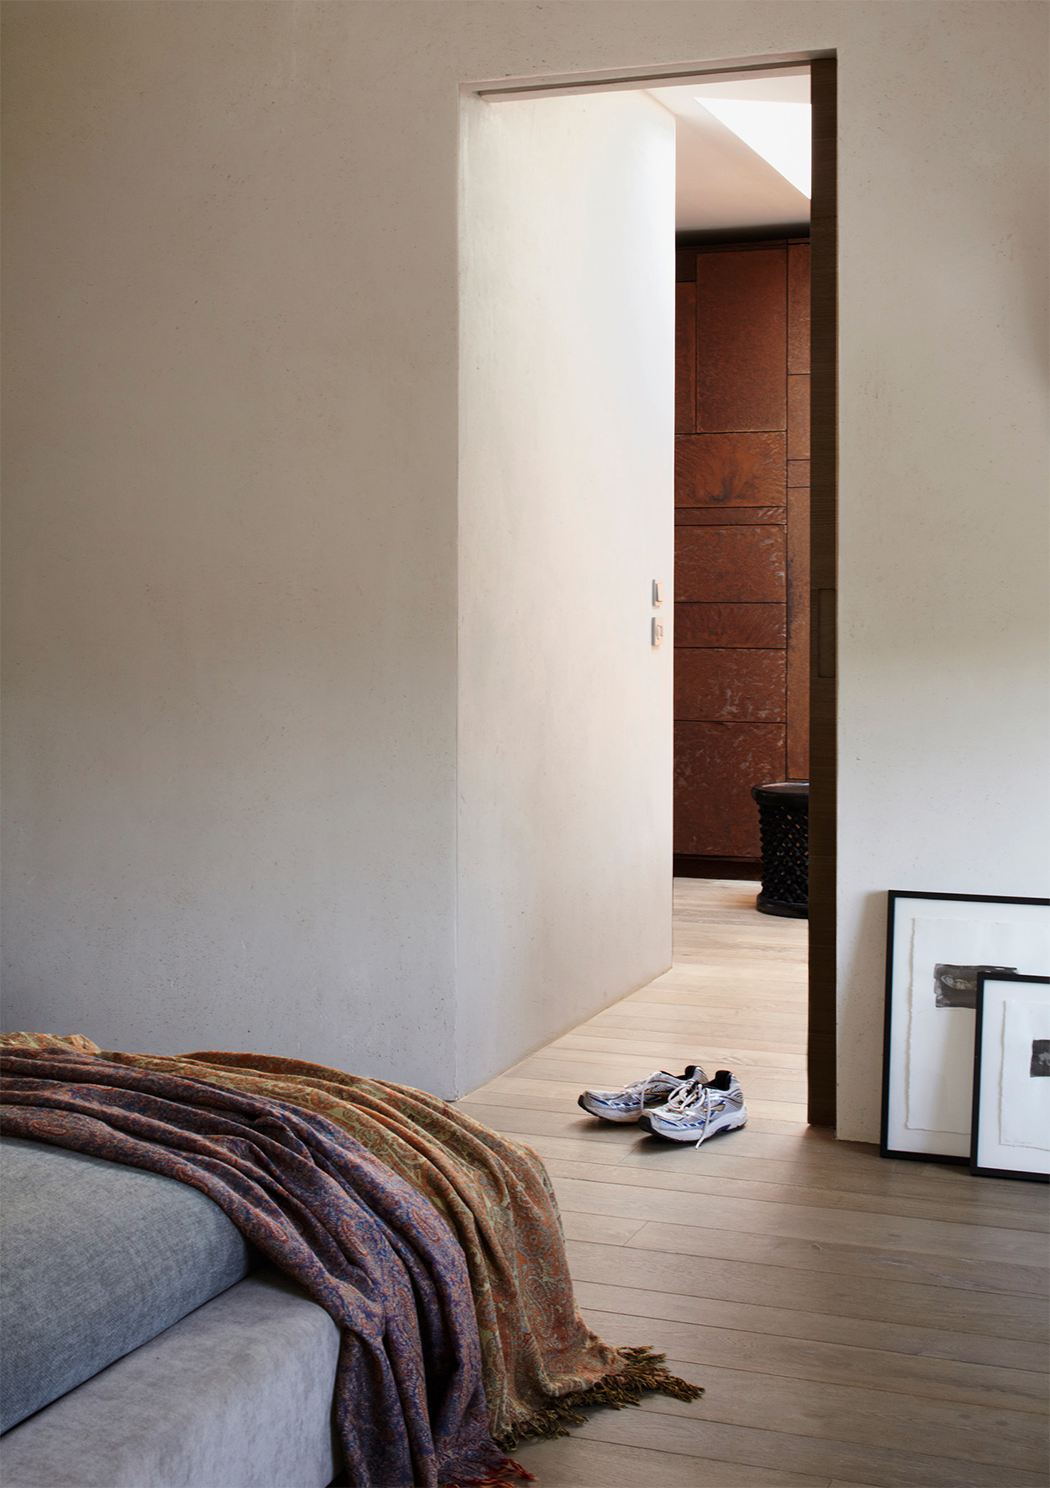 Private Apartment in Berlin by Annabell Kutucu 6.png